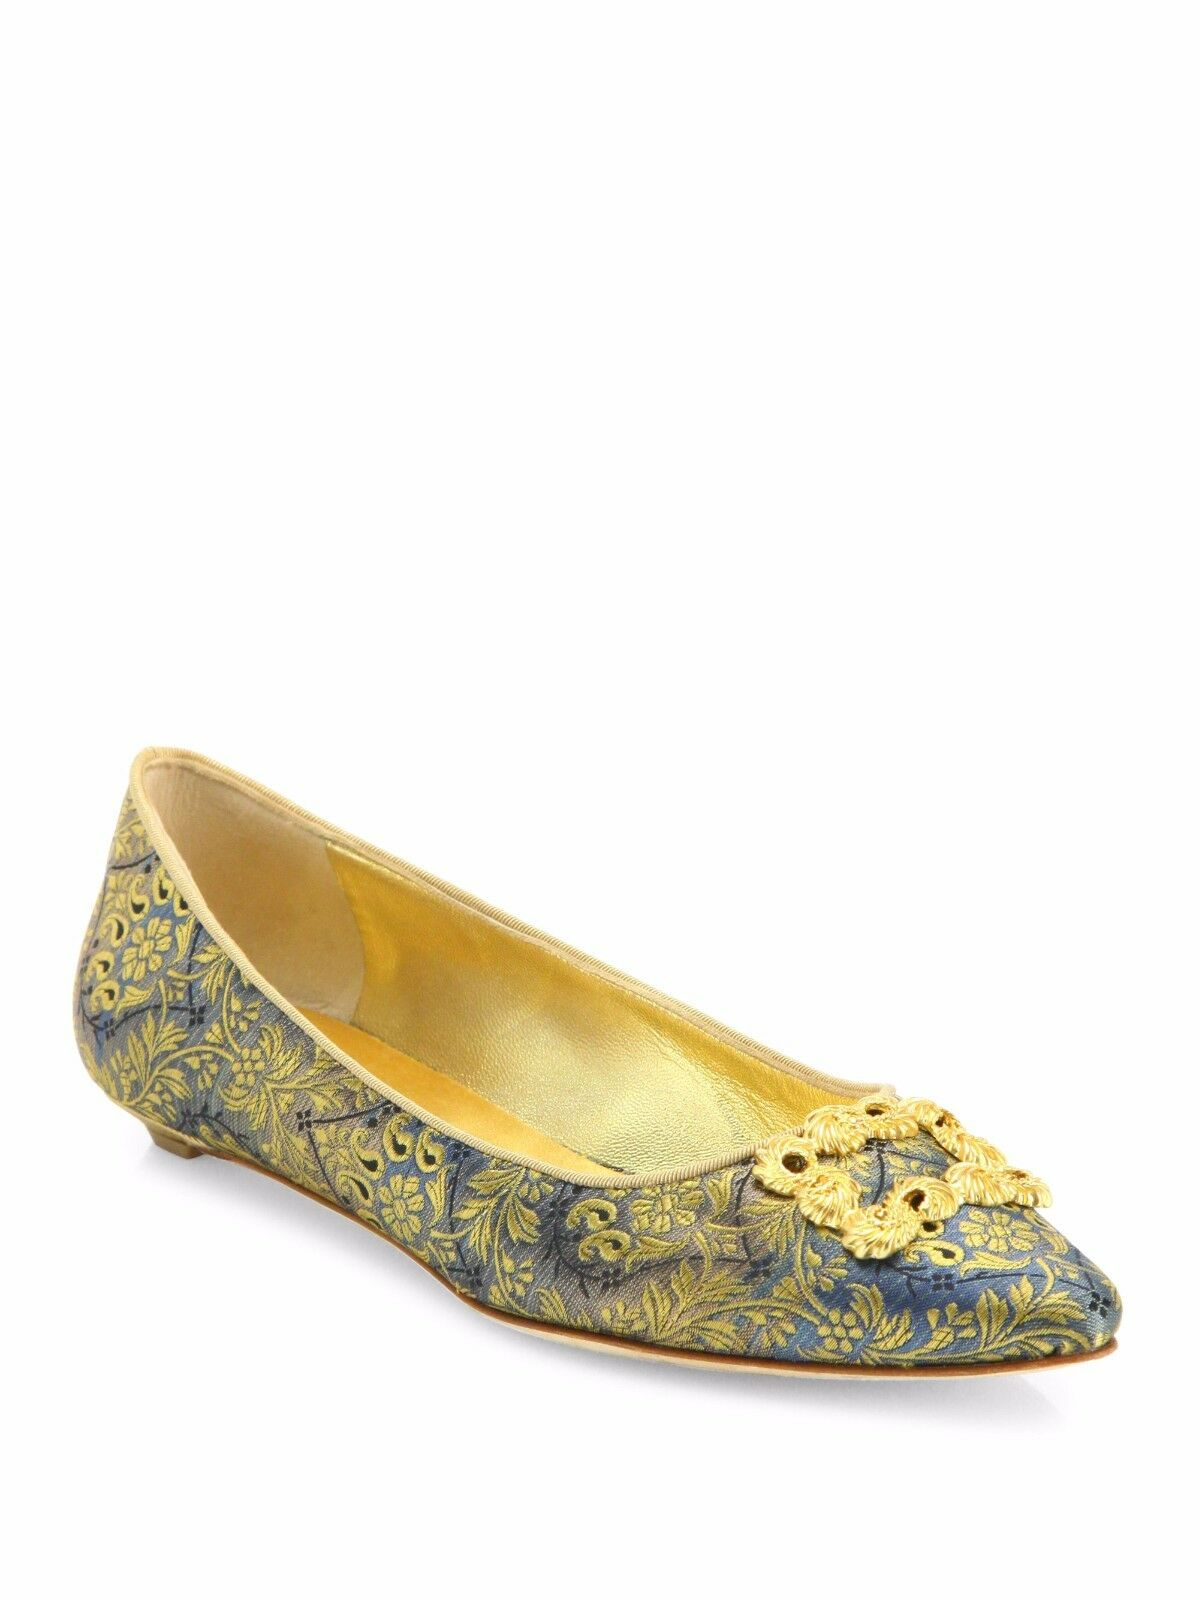 $765 NEW Embroidered MANOLO BLAHNIK Green Brocade  Remota Embroidered NEW Flats Shoes 40.5 41.5 4f5c5f